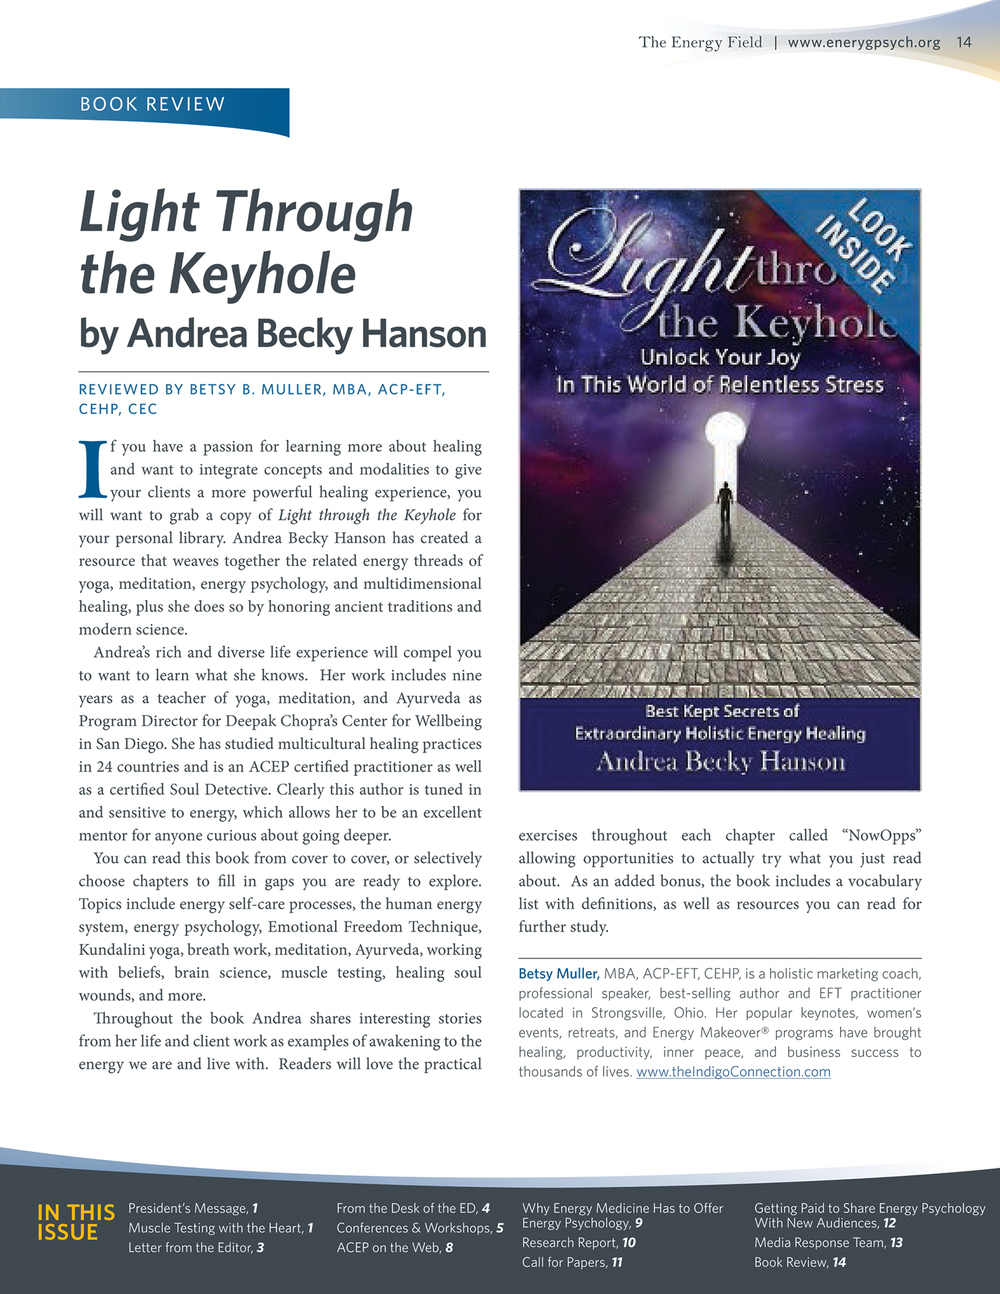 Andrea Becky Hanson's Book Review